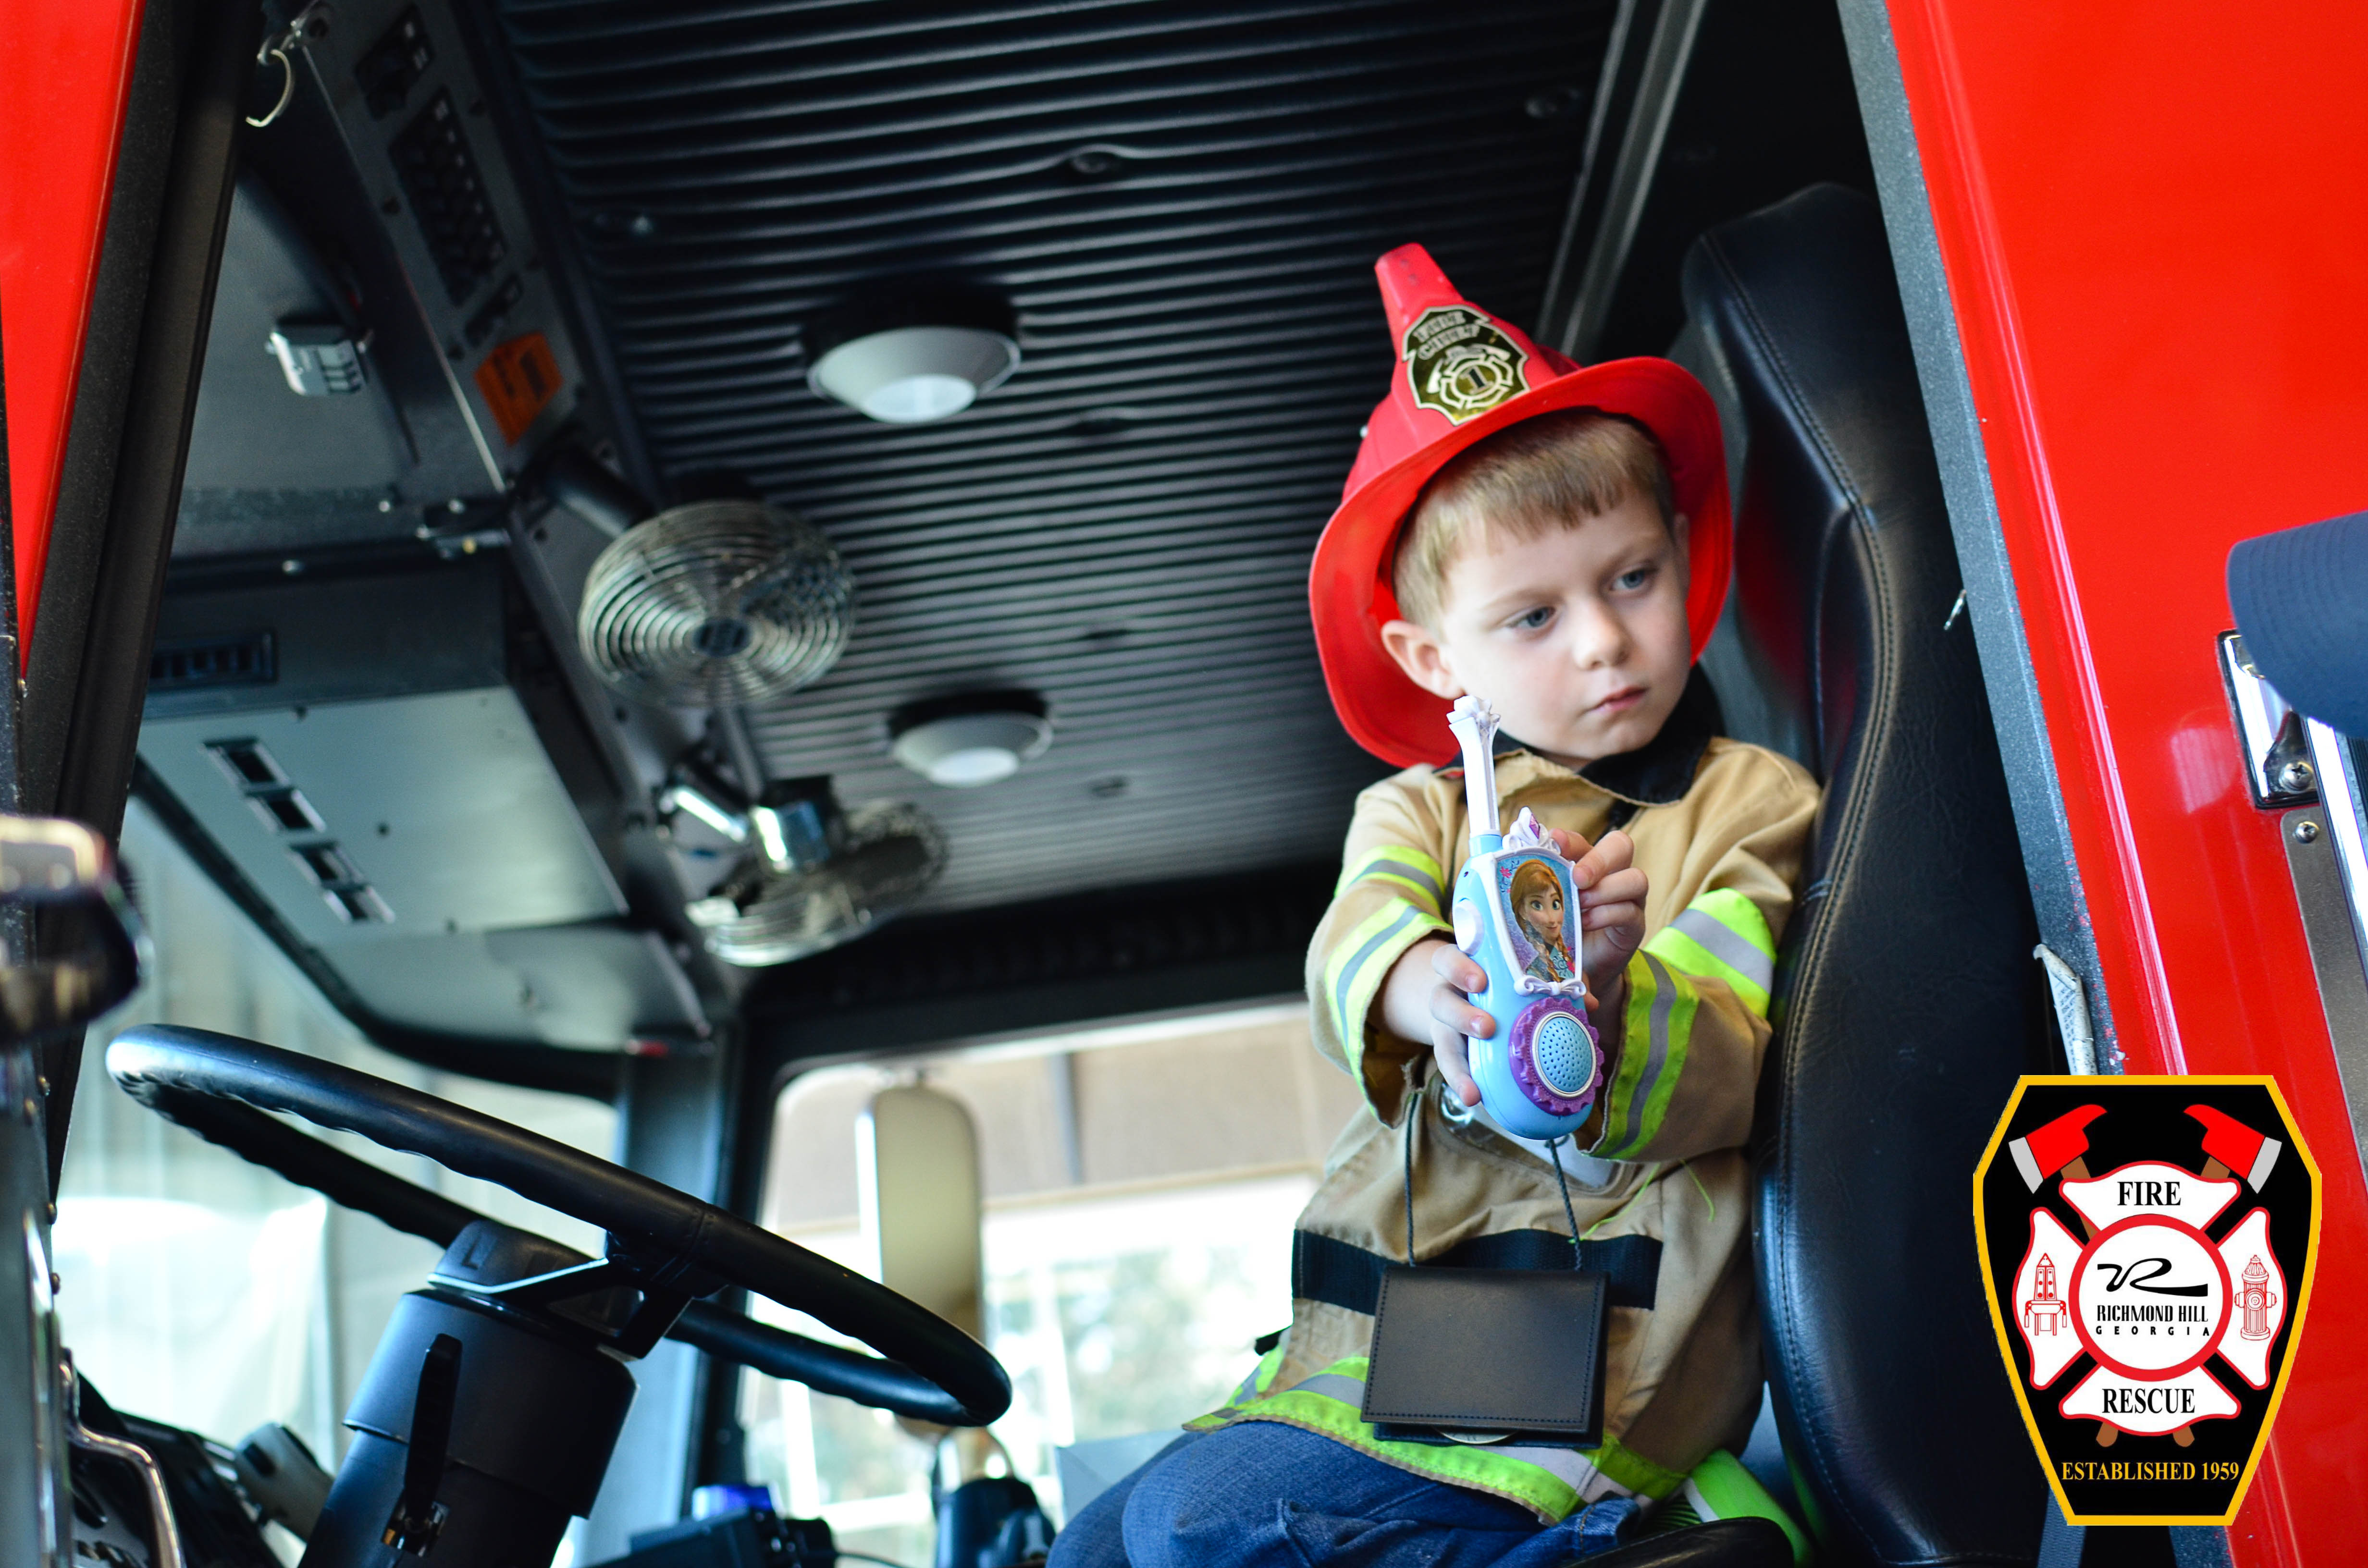 A young child sits in a fire truck